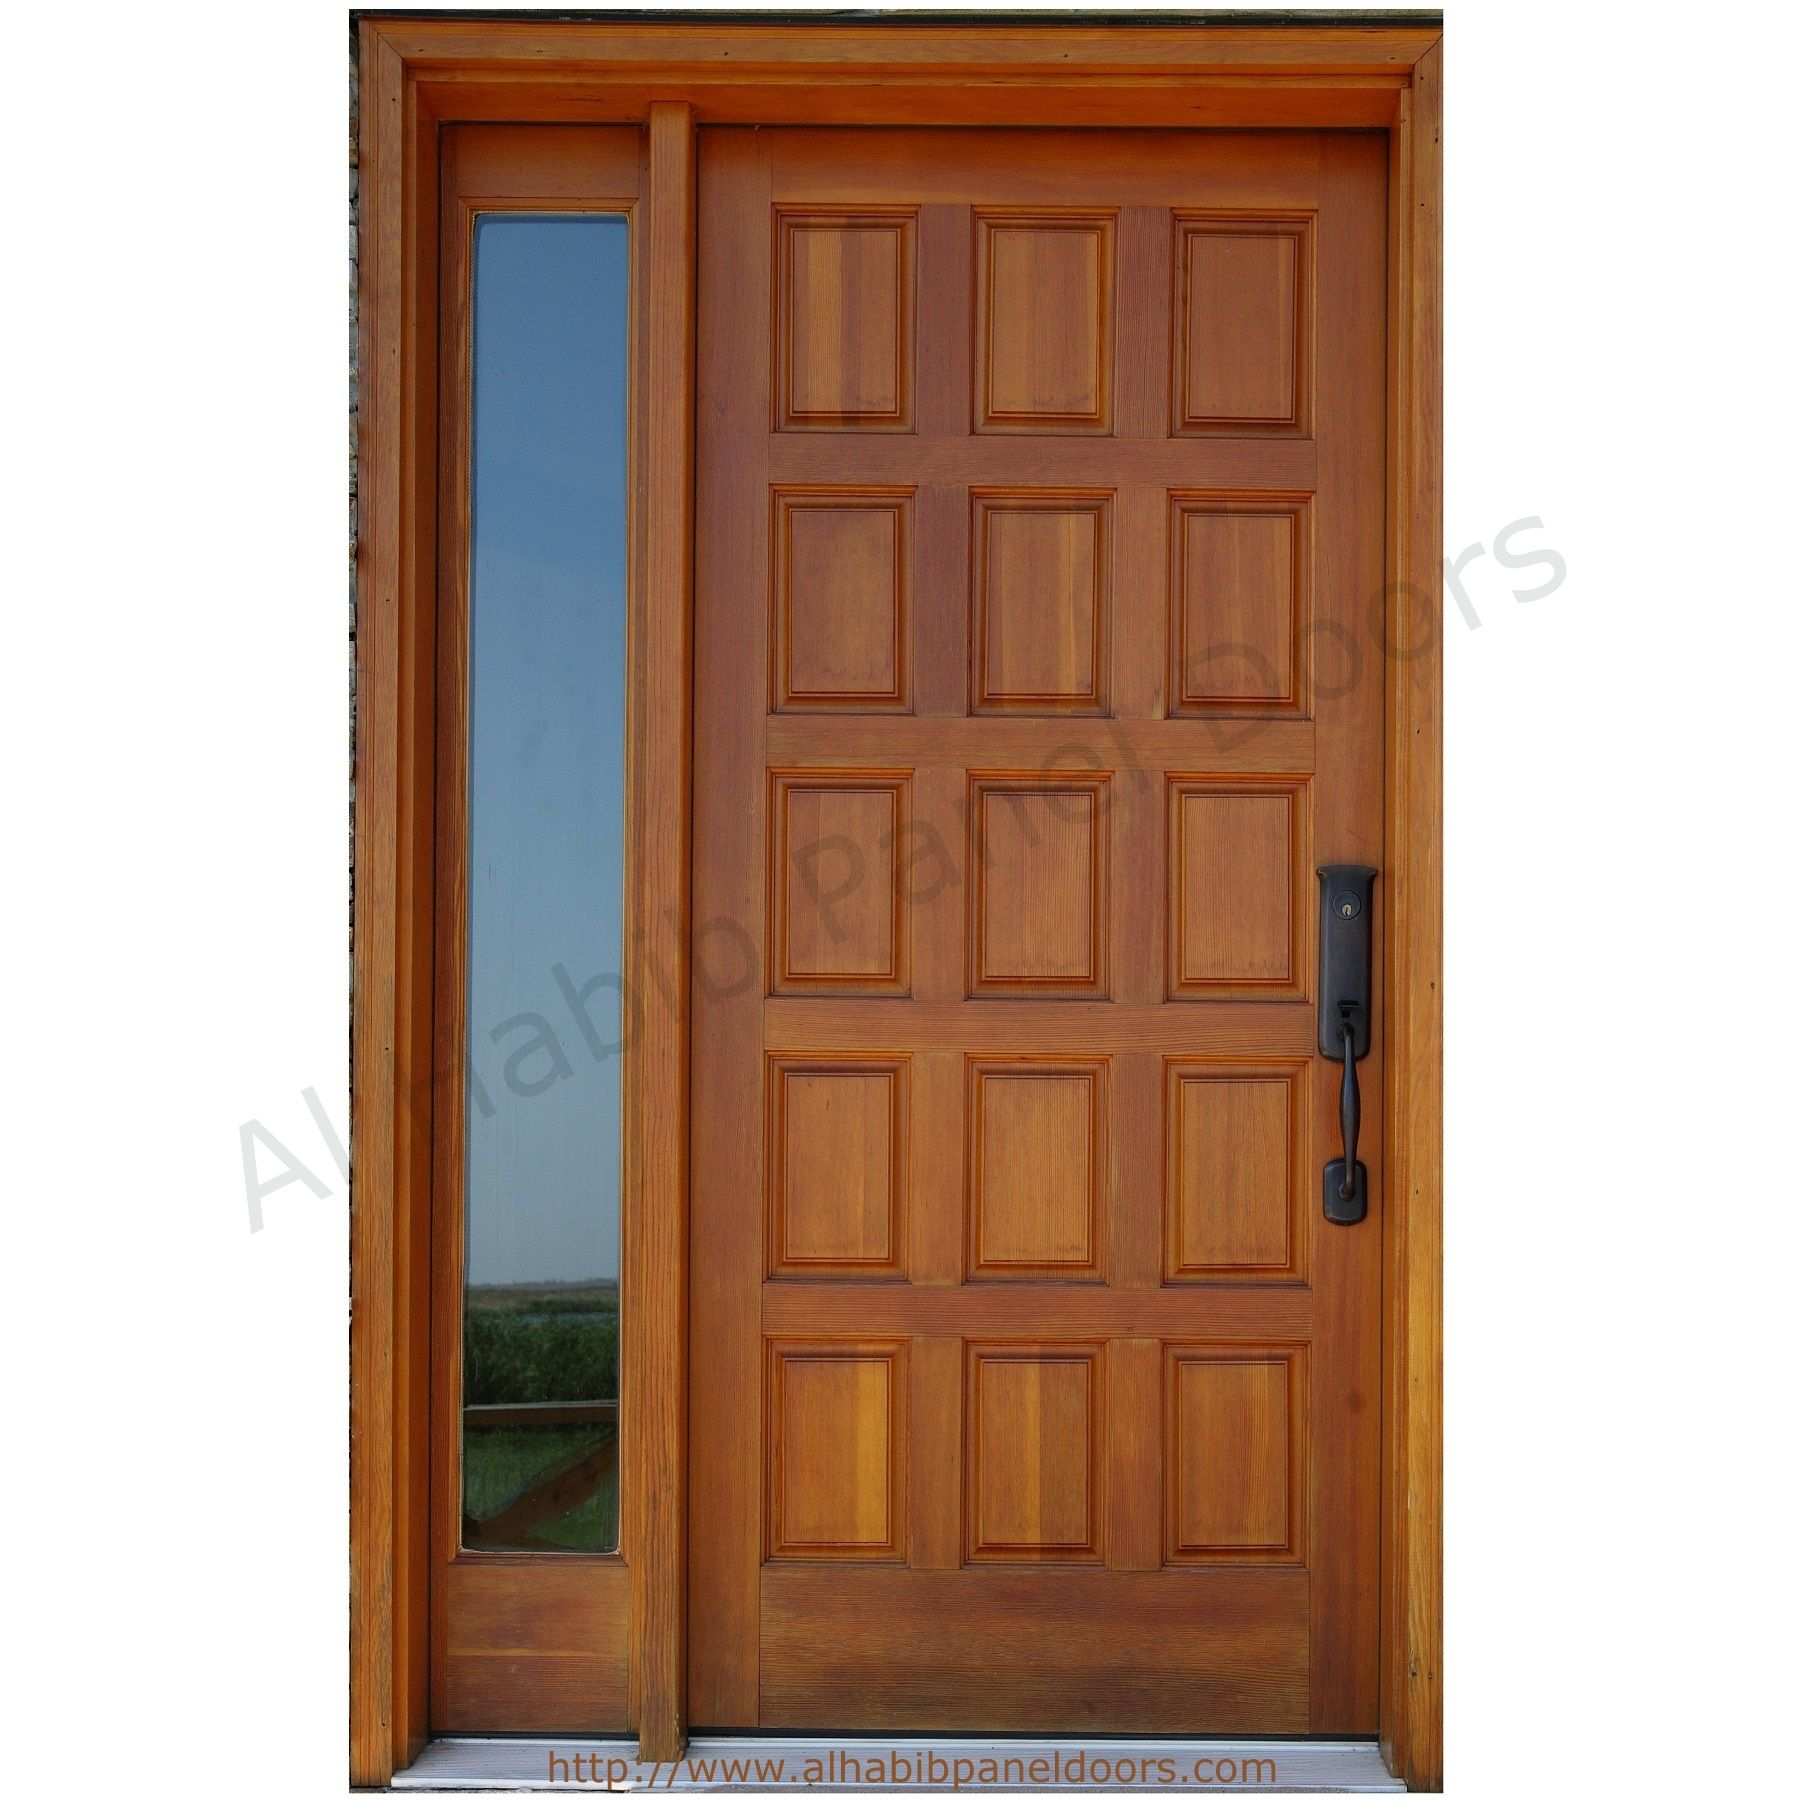 solid wooden panel door with frame hpd427 solid wood doors al habib panel doors